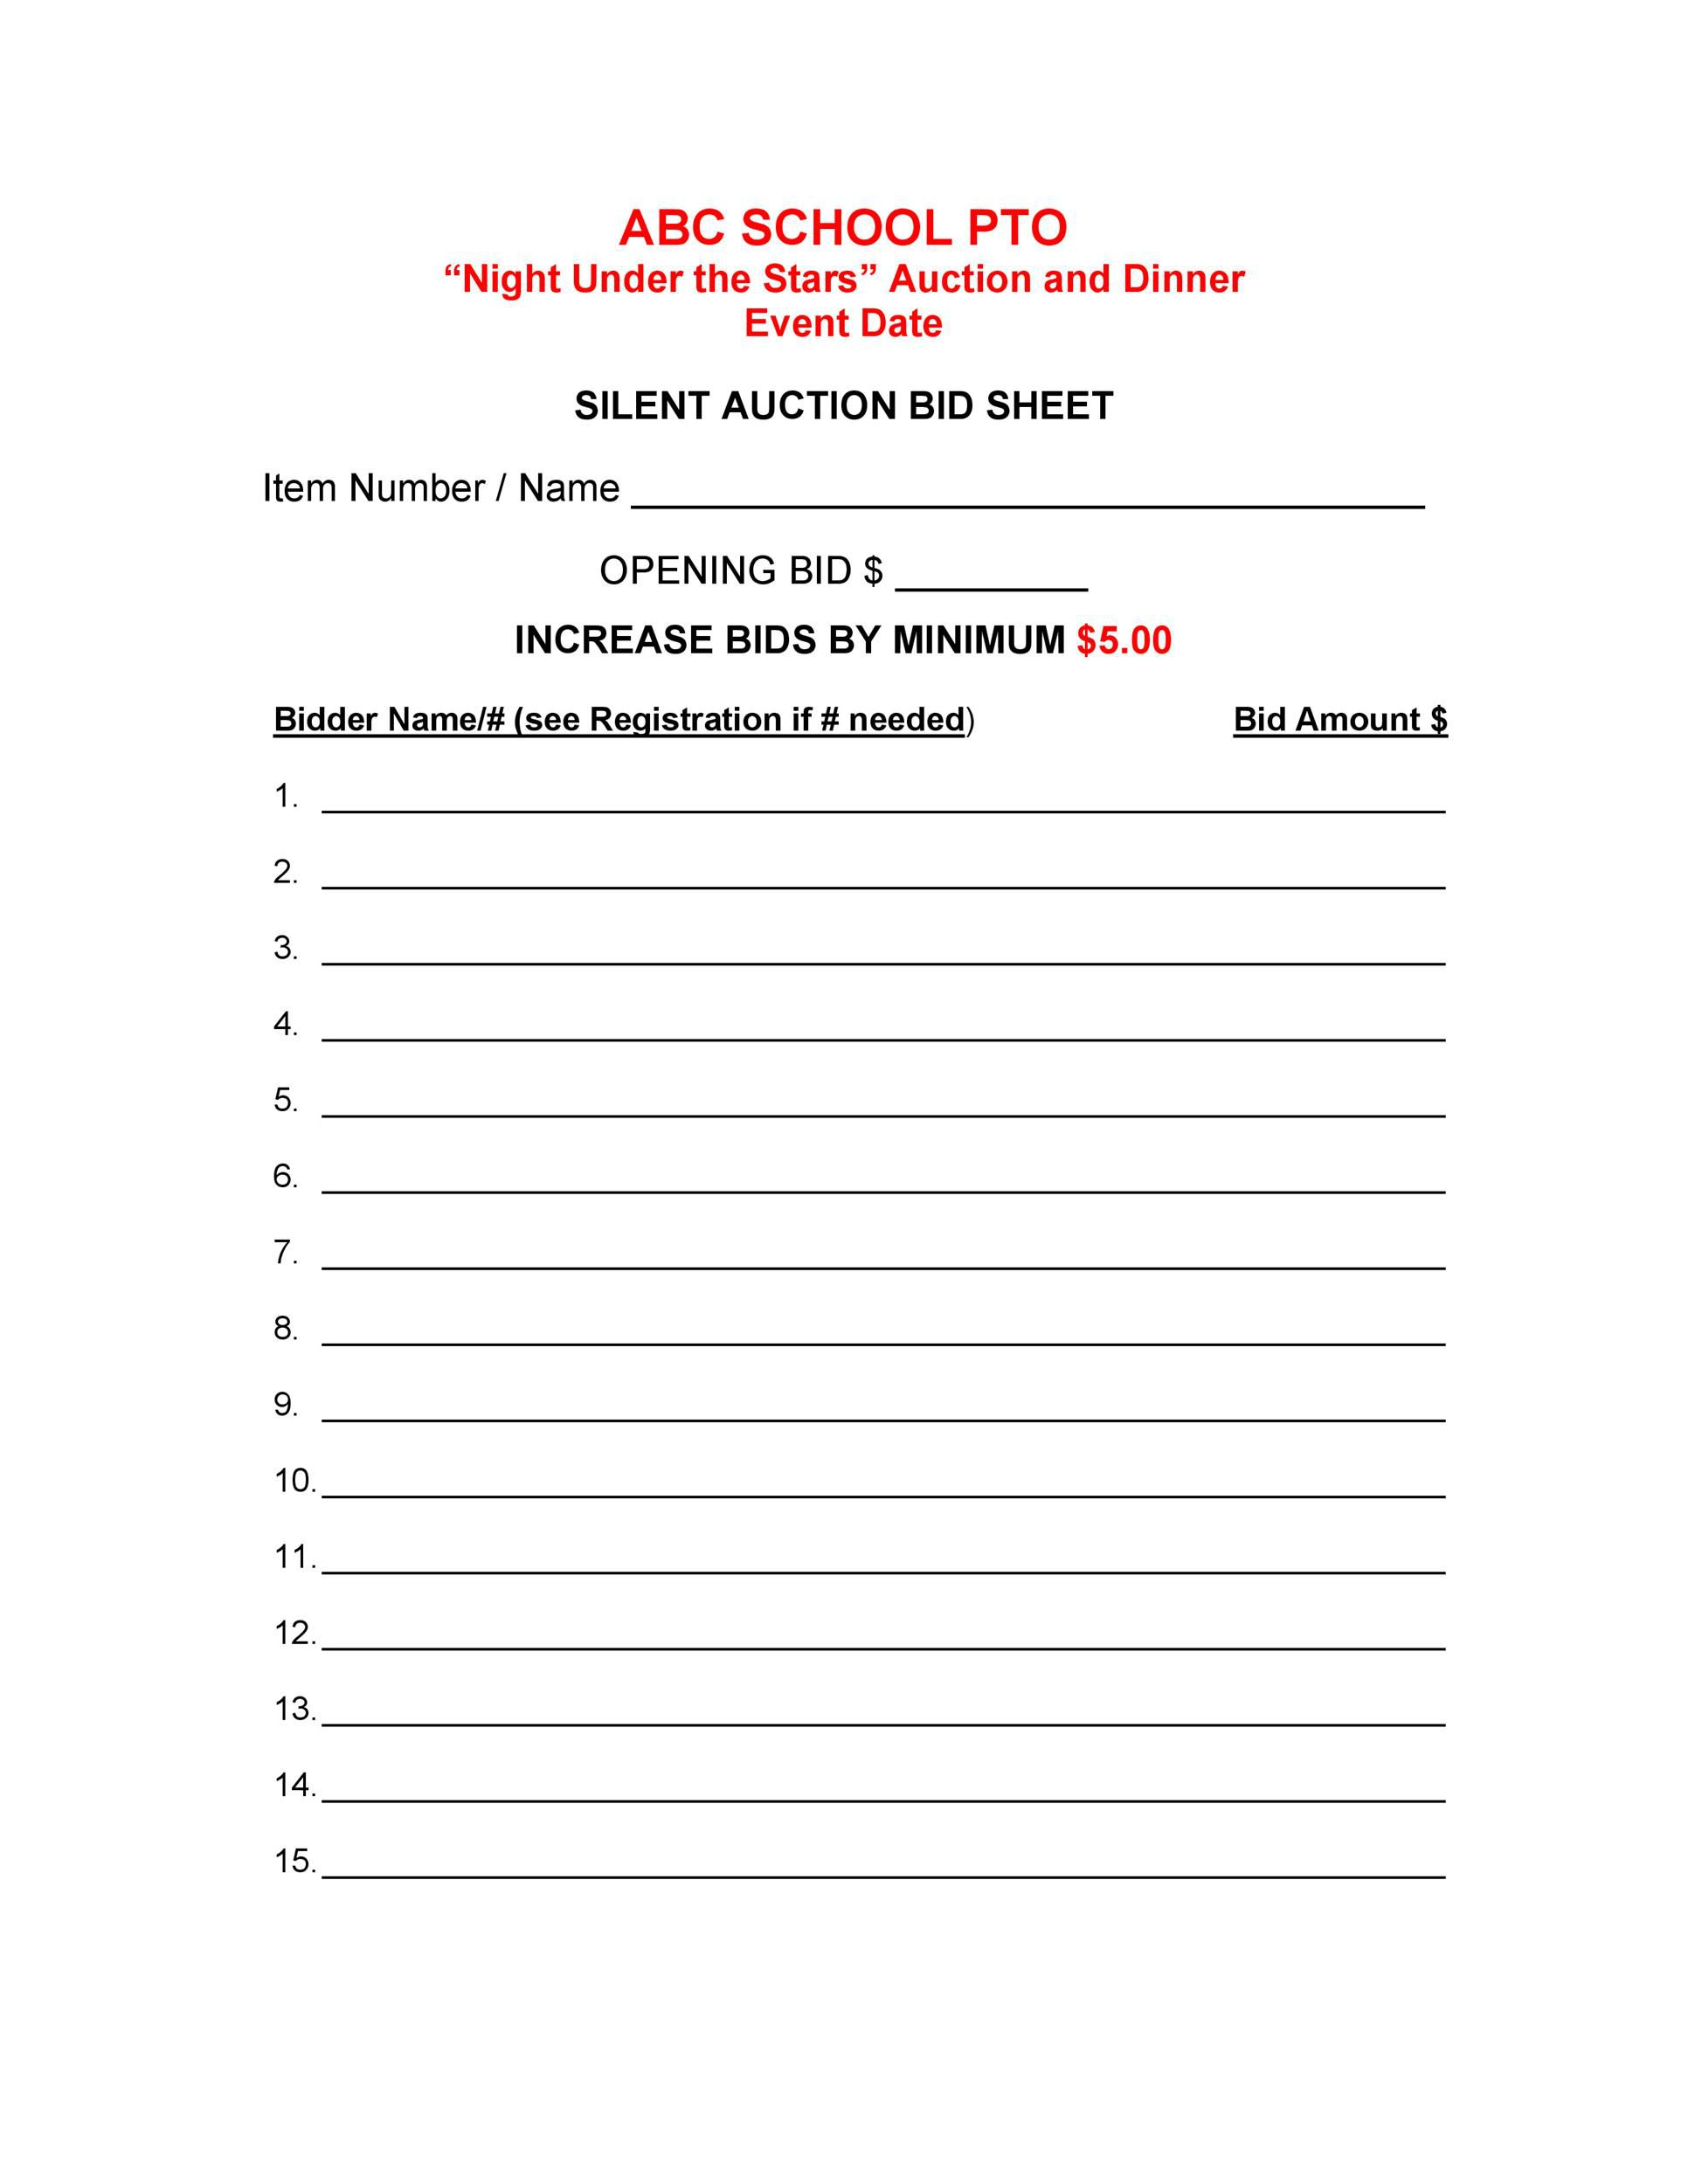 005 Unusual Silent Auction Bid Sheet Template High Def  Free Download Sample Microsoft WordFull